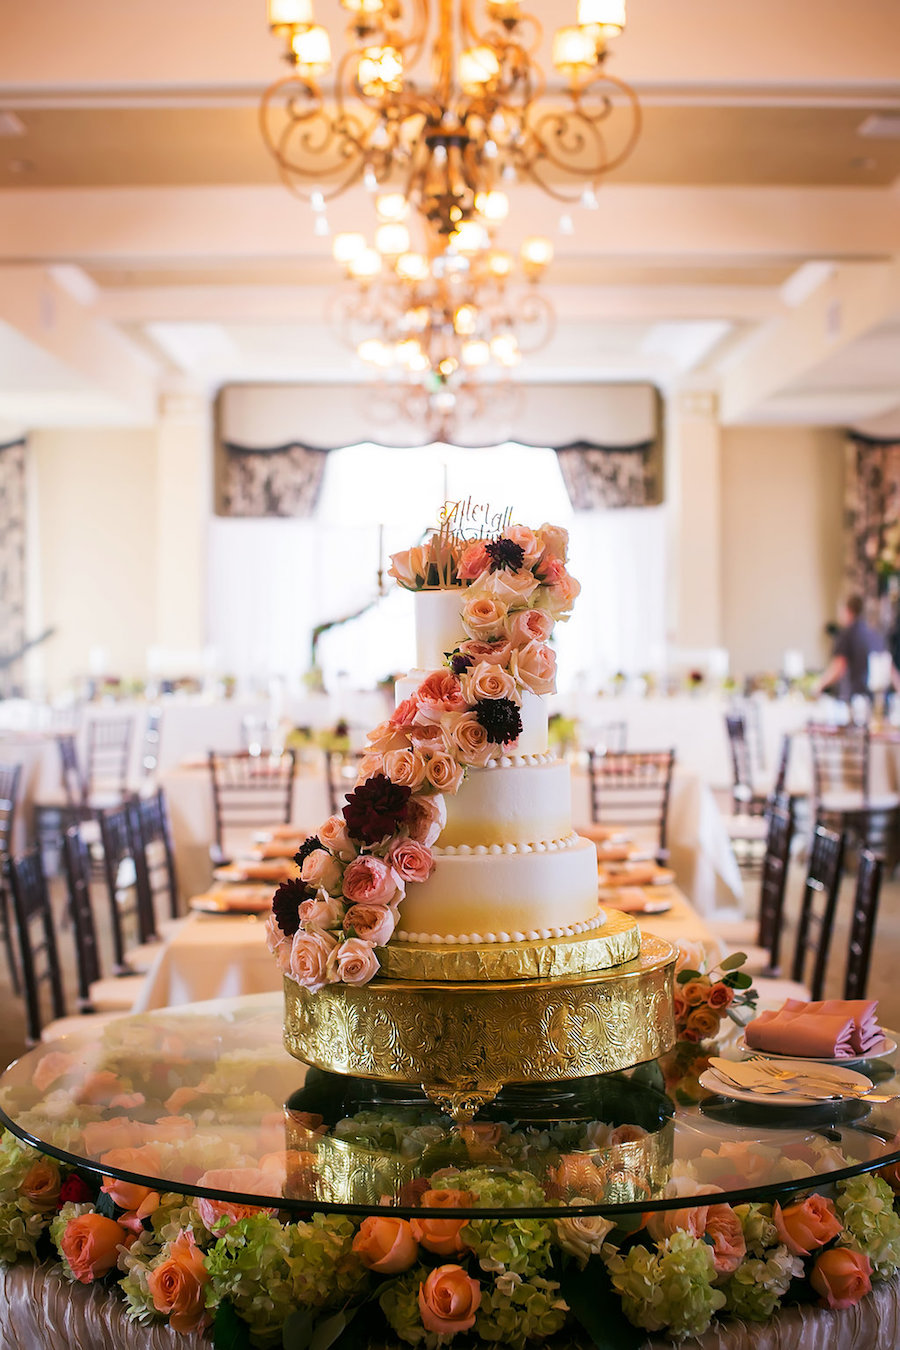 Four Tiered Round Ombre Wedding Cake with Fresh Rose Garland Accent Over Cake Table with Floral Decor in Don CeSar Hotel Ballroom   Limelight Photography